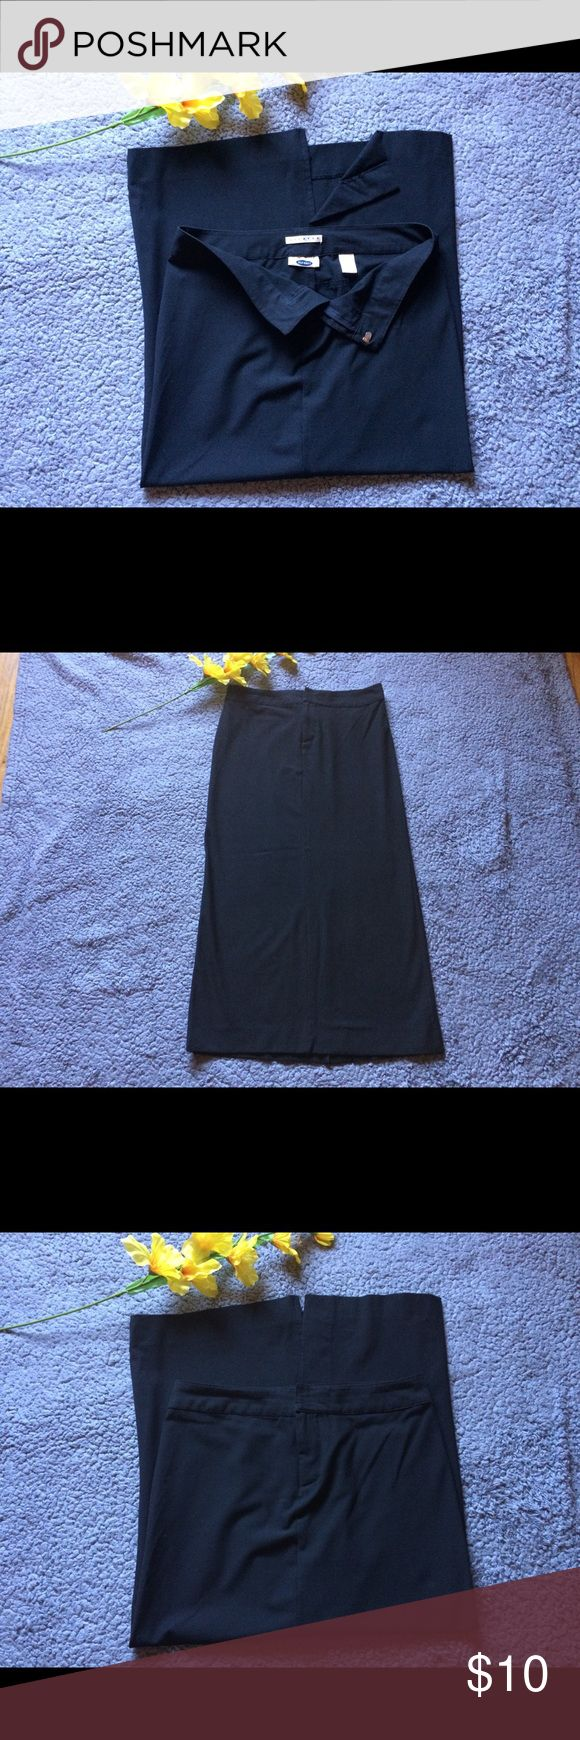 """Stretch Old Navy Skirt Old Navy stretch long skirt. Zipper on front. Slit on back. 49% rayon. 48% polyester. 3% Lycra spandex. Size 4. Approx (laid flat) 36"""" long. 16"""" Waist. 18 1/2"""" Hip. In good condition Old Navy Skirts Midi"""